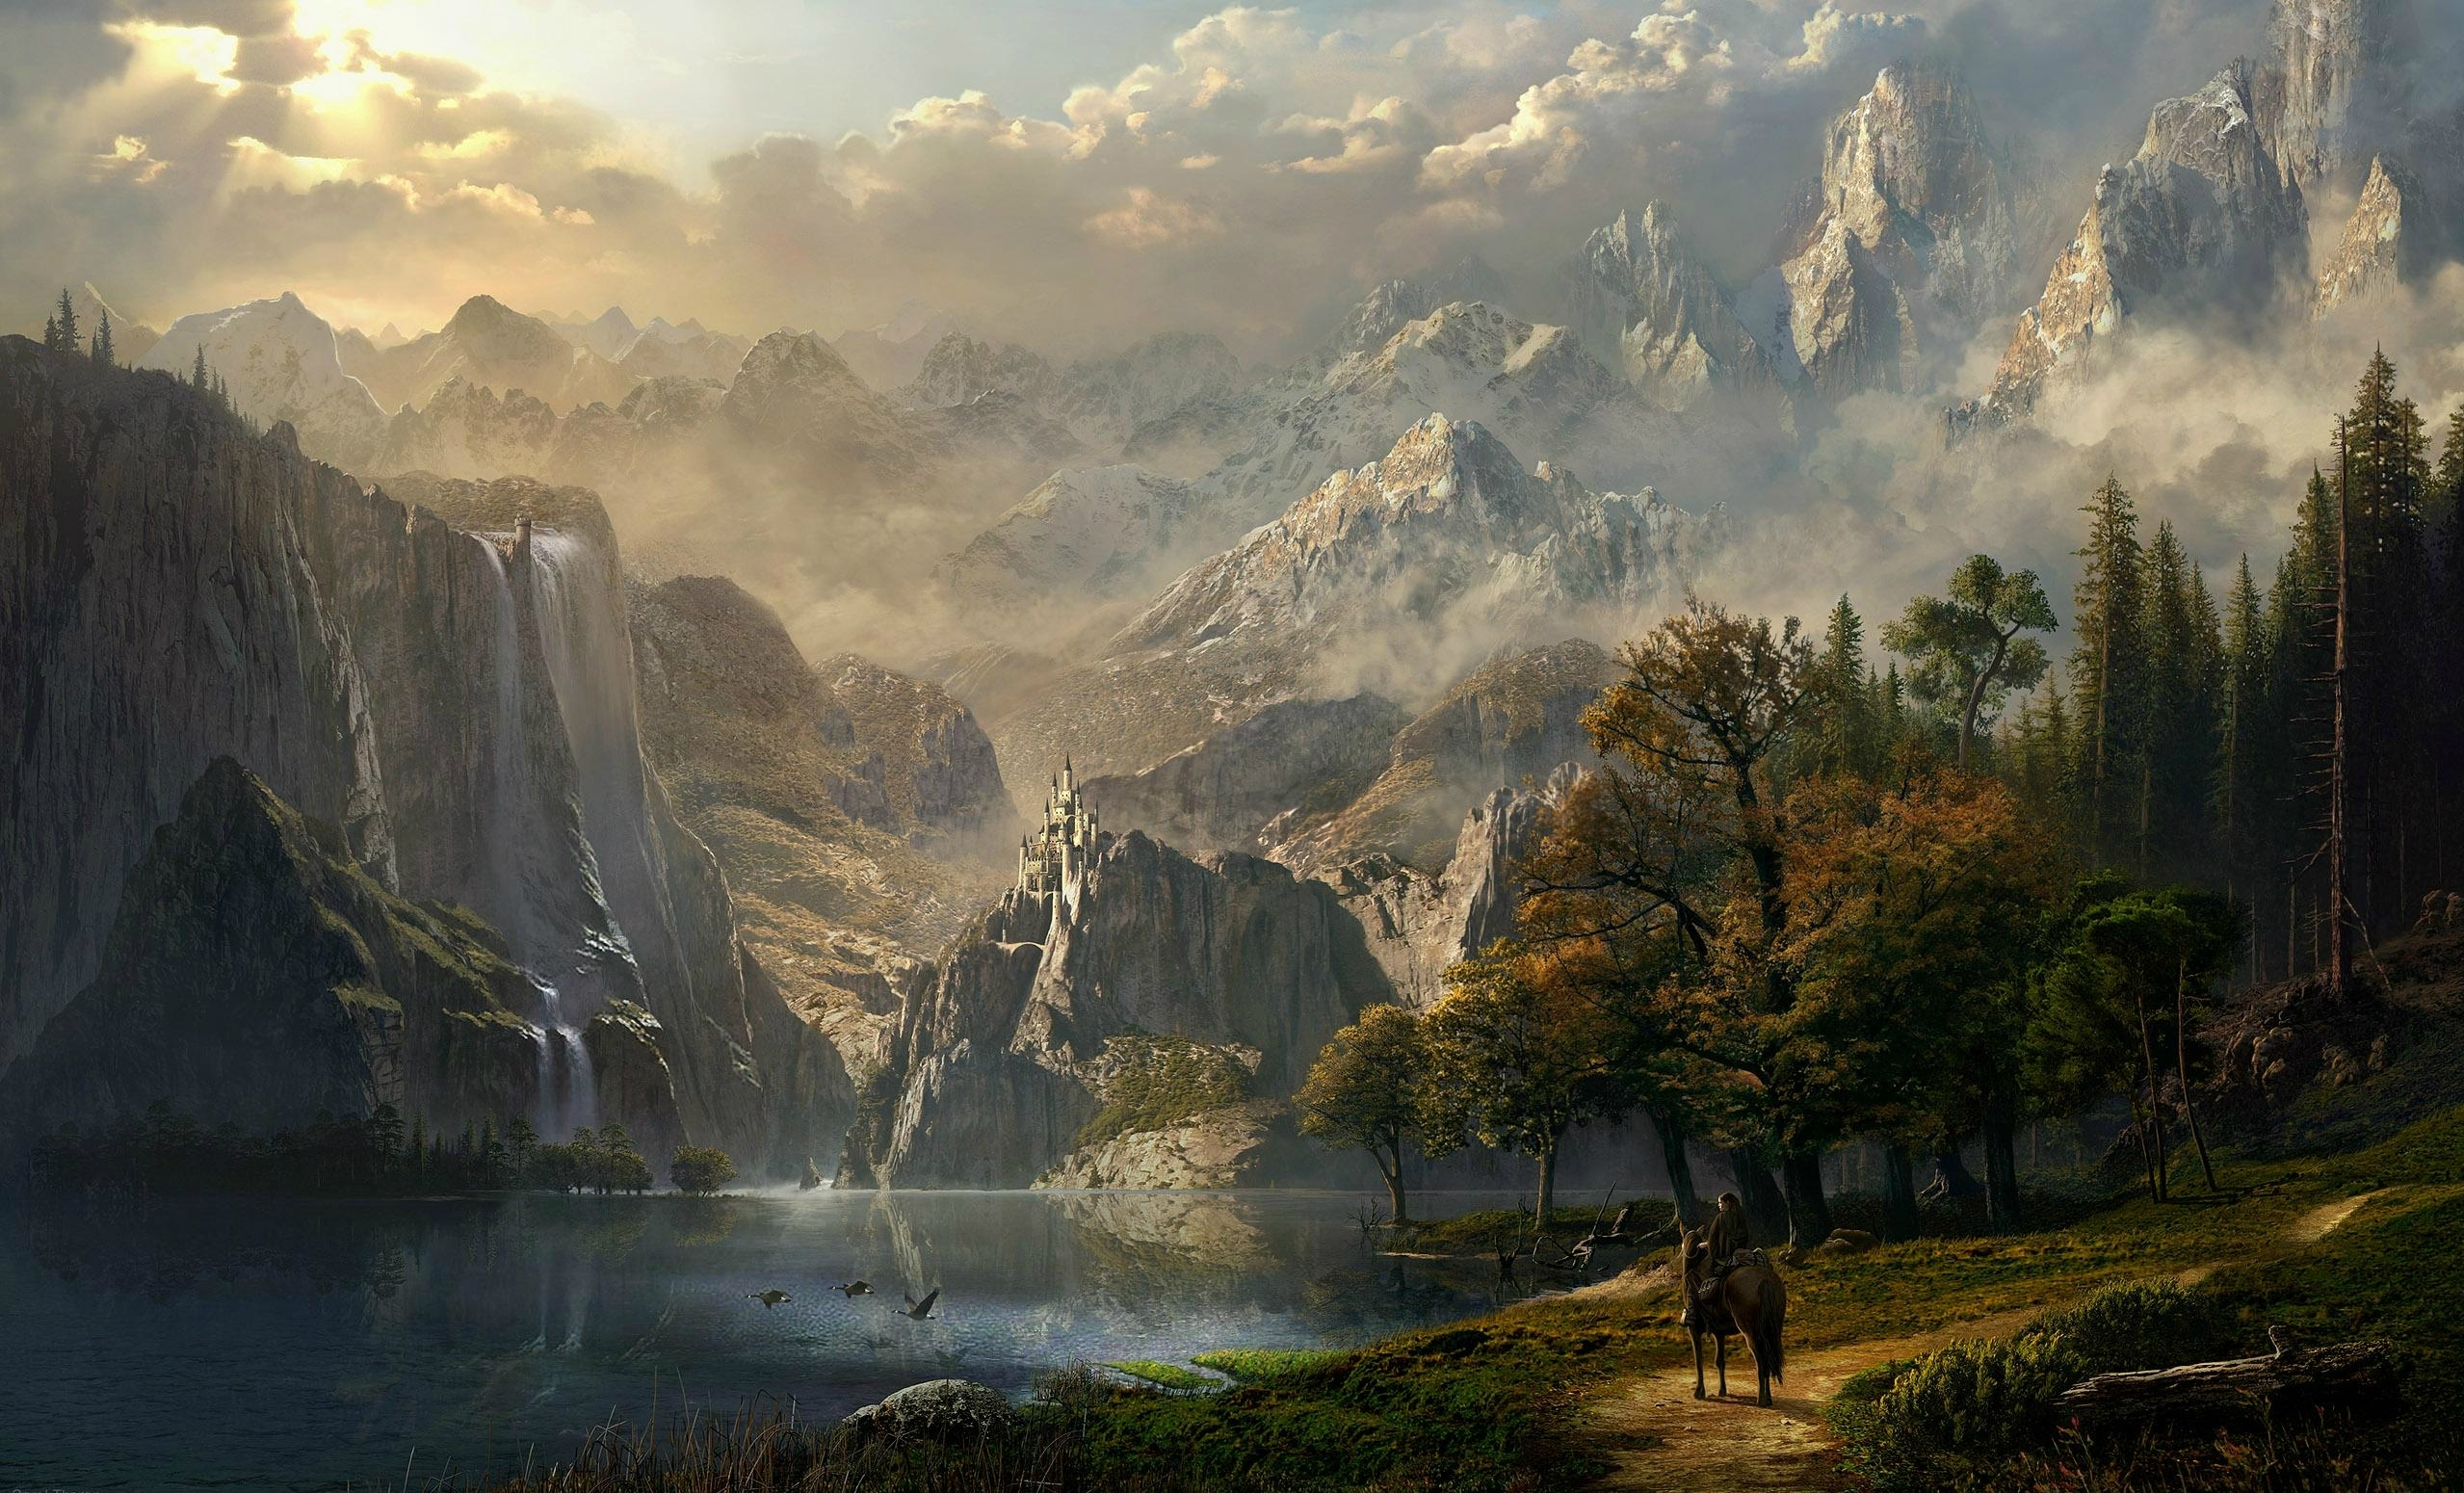 Fantasy Art Scenery - Fantasy Art Scenery Wallpaper Sarel Theron